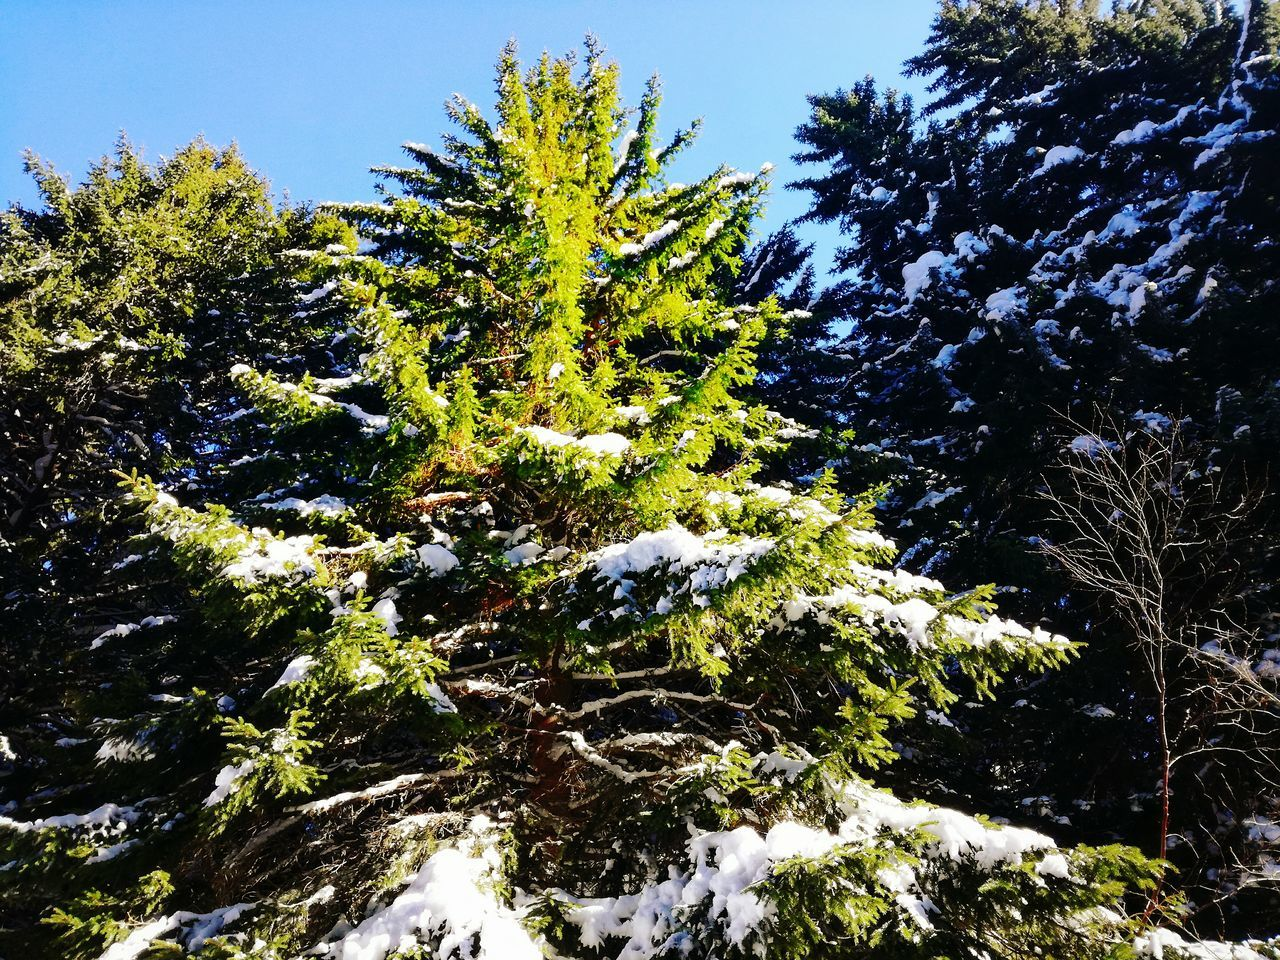 Tree No People Sky Growth Low Angle View Outdoors Nature Day Pine Pine Tree Pine Woodland Pinetrees🌲 Pinetrees Pine Trees Pine And Snow Pines Pine Needles Pine Wood Pine Forest Pinewood Pines Forest Vitosha National Park Vitosha Mountain Bulgaria Vitosha Mountain Sofia, Bulgaria